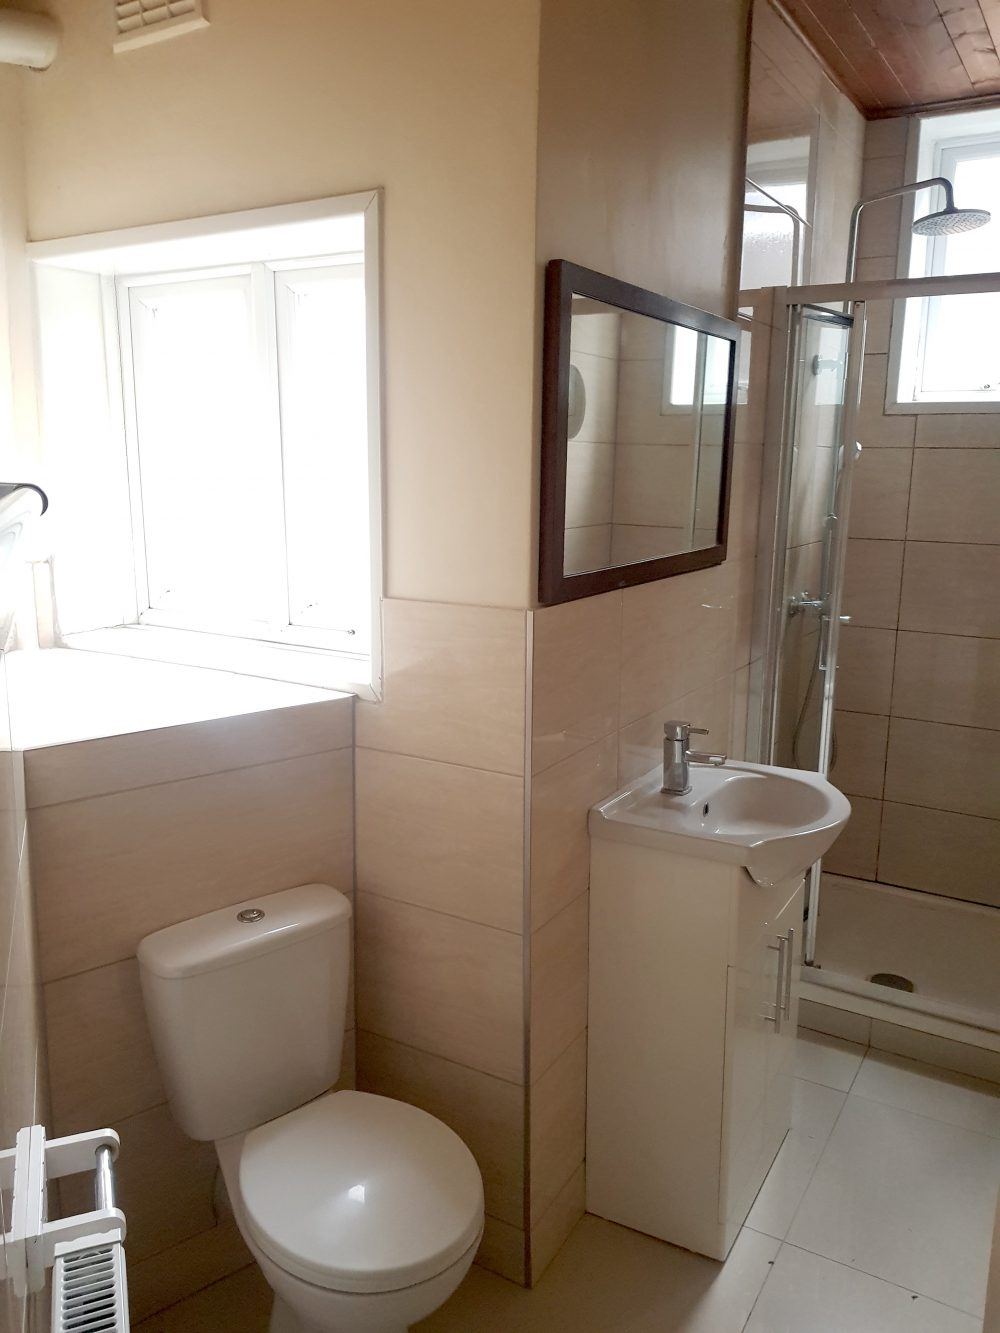 2 Bed Flat to rent in N15 Manor House Pic 14